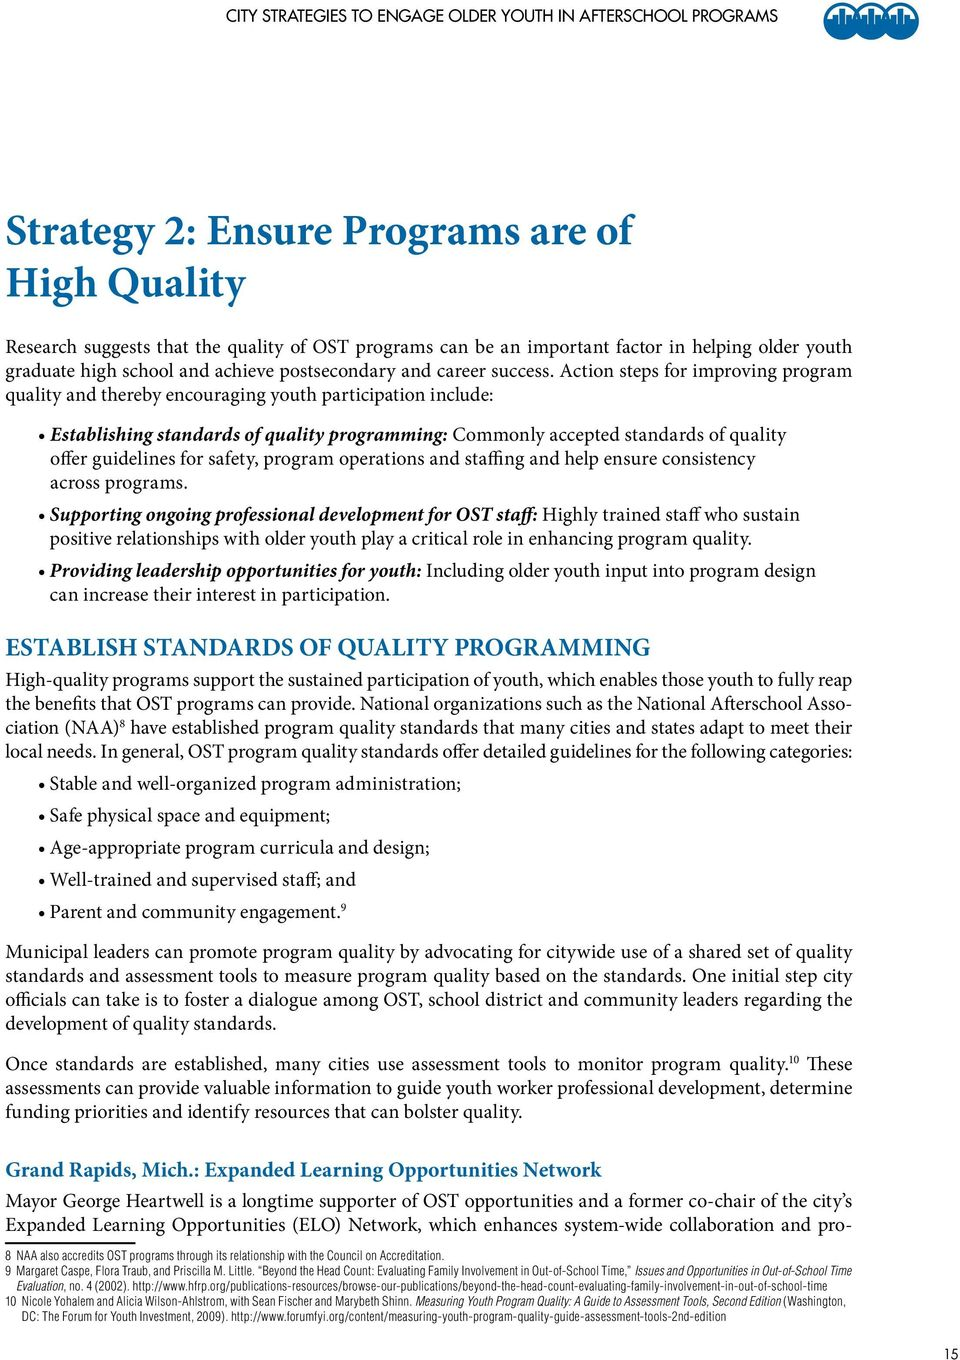 Action steps for improving program quality and thereby encouraging youth participation include: Establishing standards of quality programming: Commonly accepted standards of quality offer guidelines